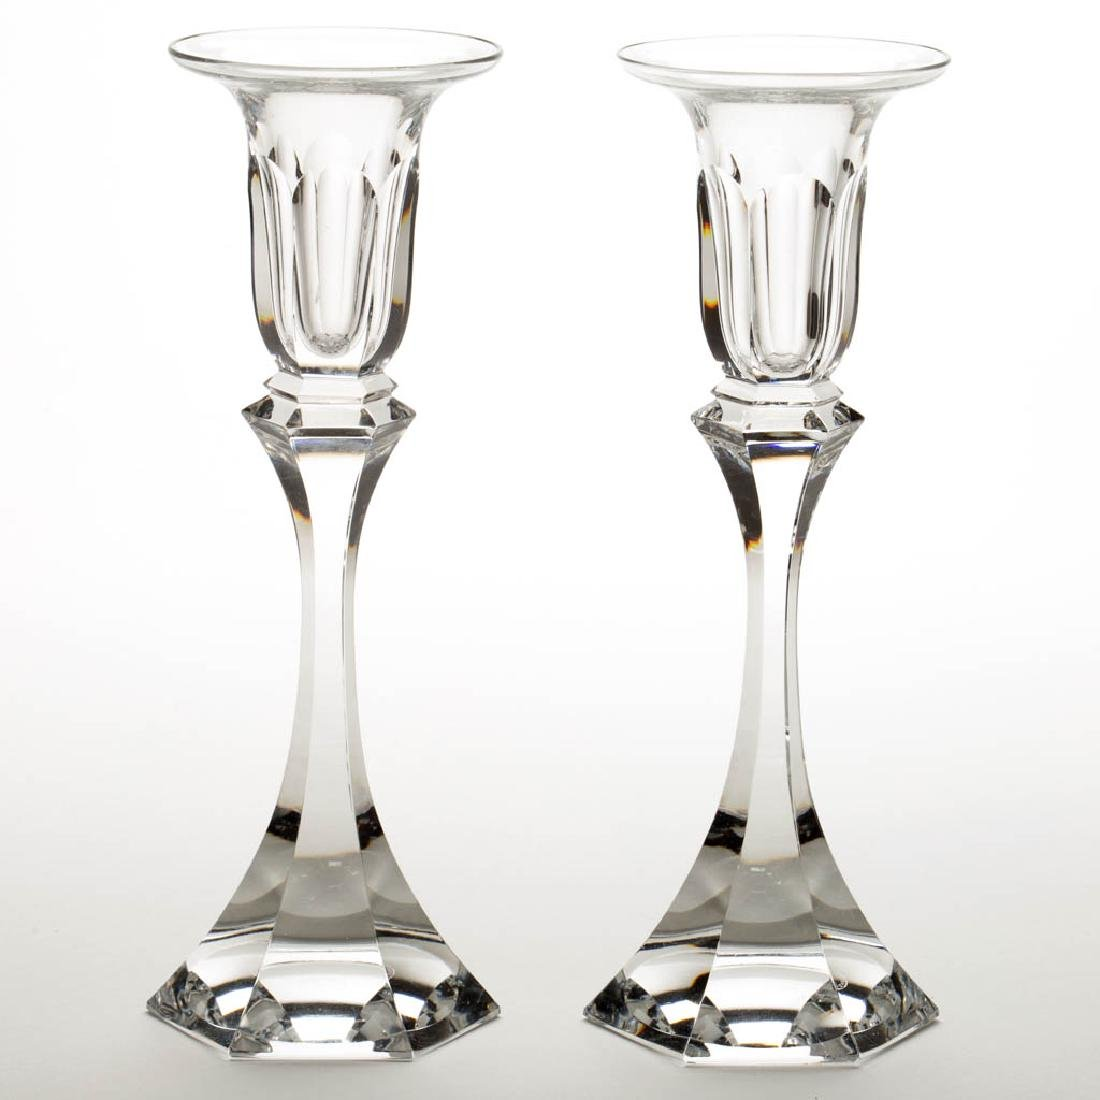 ST. LOUIS CRYSTAL ART GLASS PAIR OF CANDLESTICKS